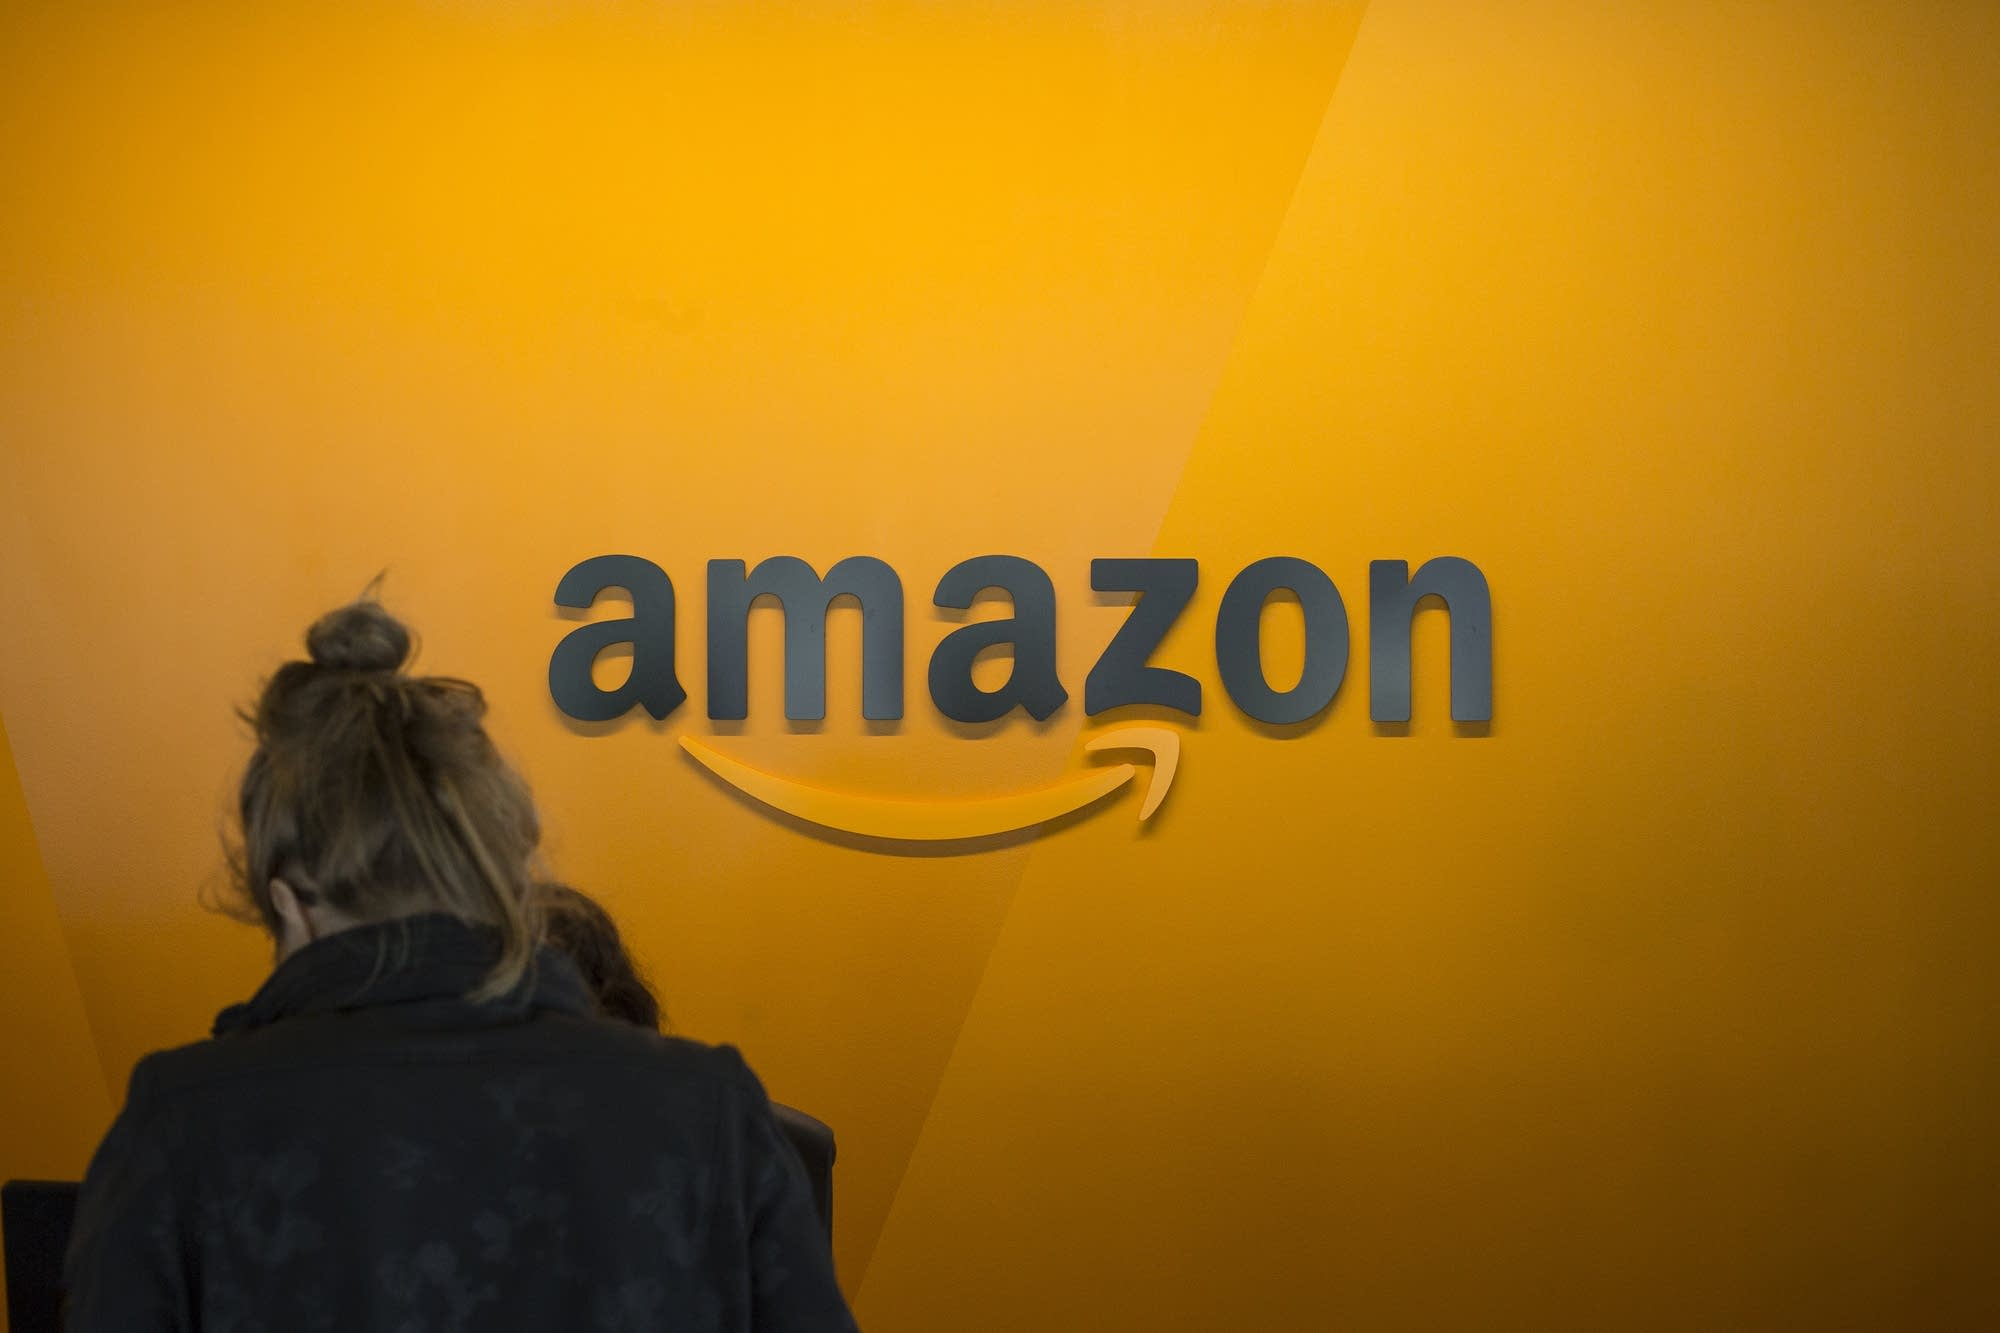 Amazon expands office, hires 2000 in Boston